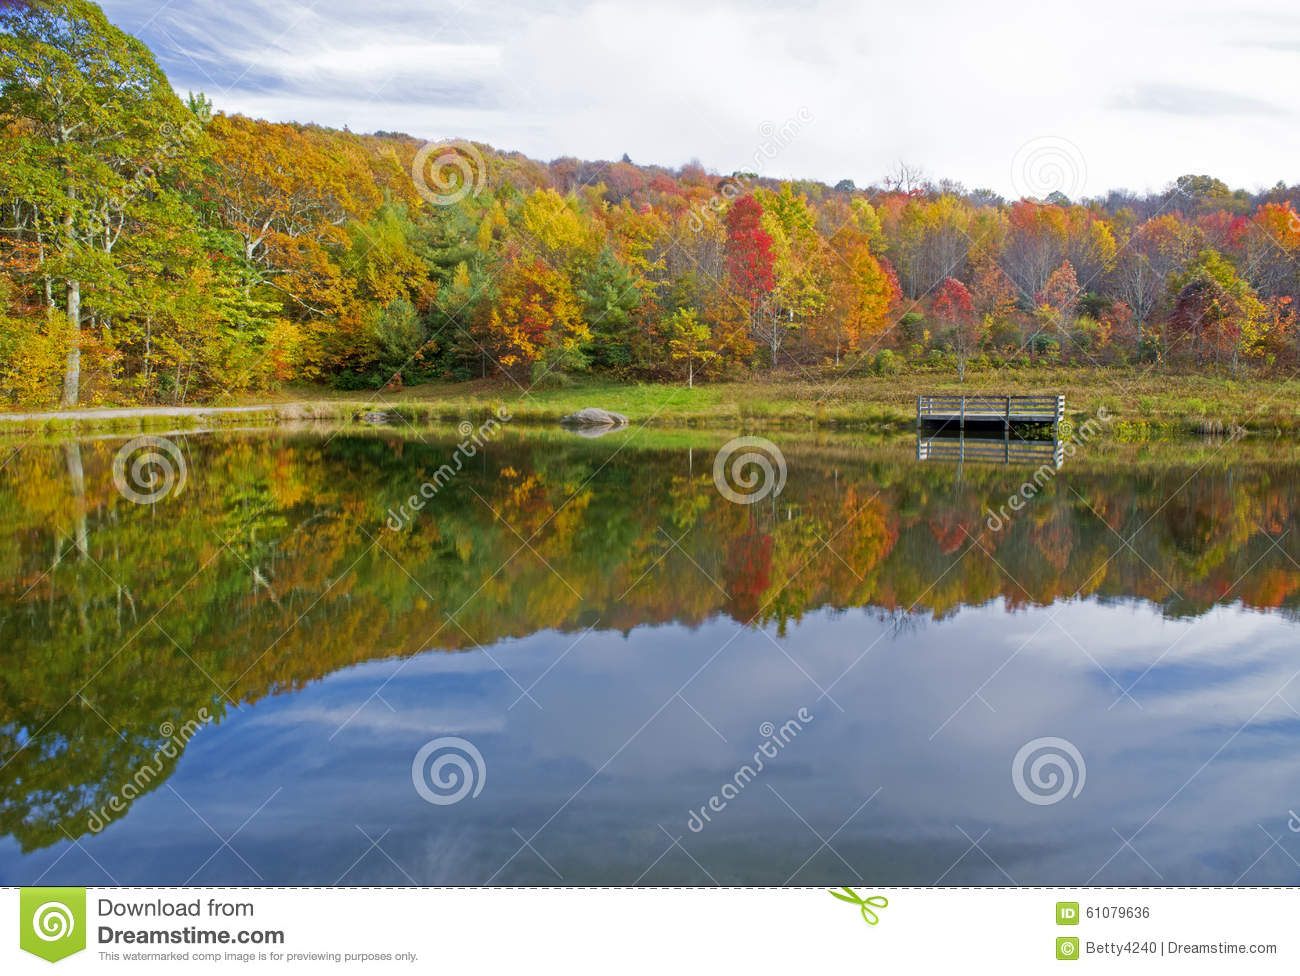 Water reflections in small pond in fall.